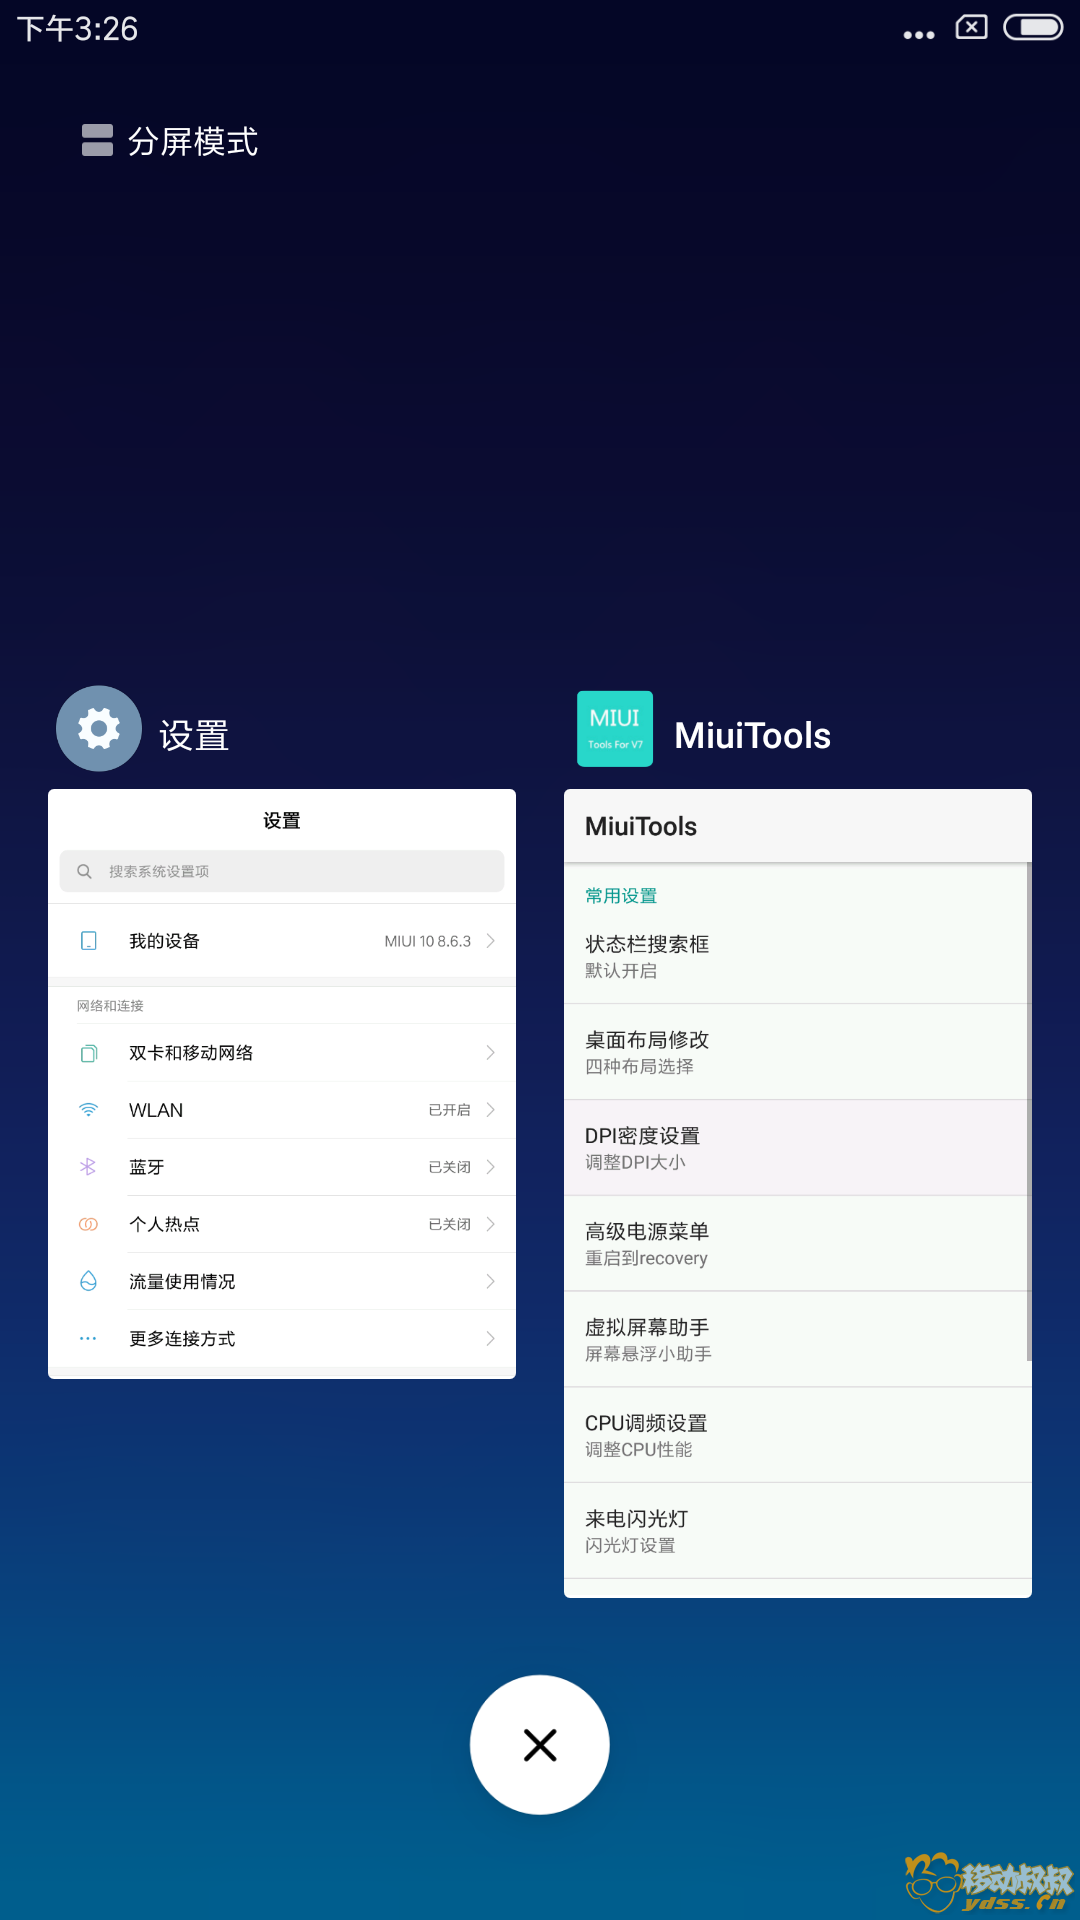 Screenshot_2018-06-03-15-26-07-119_com.android.systemui.png